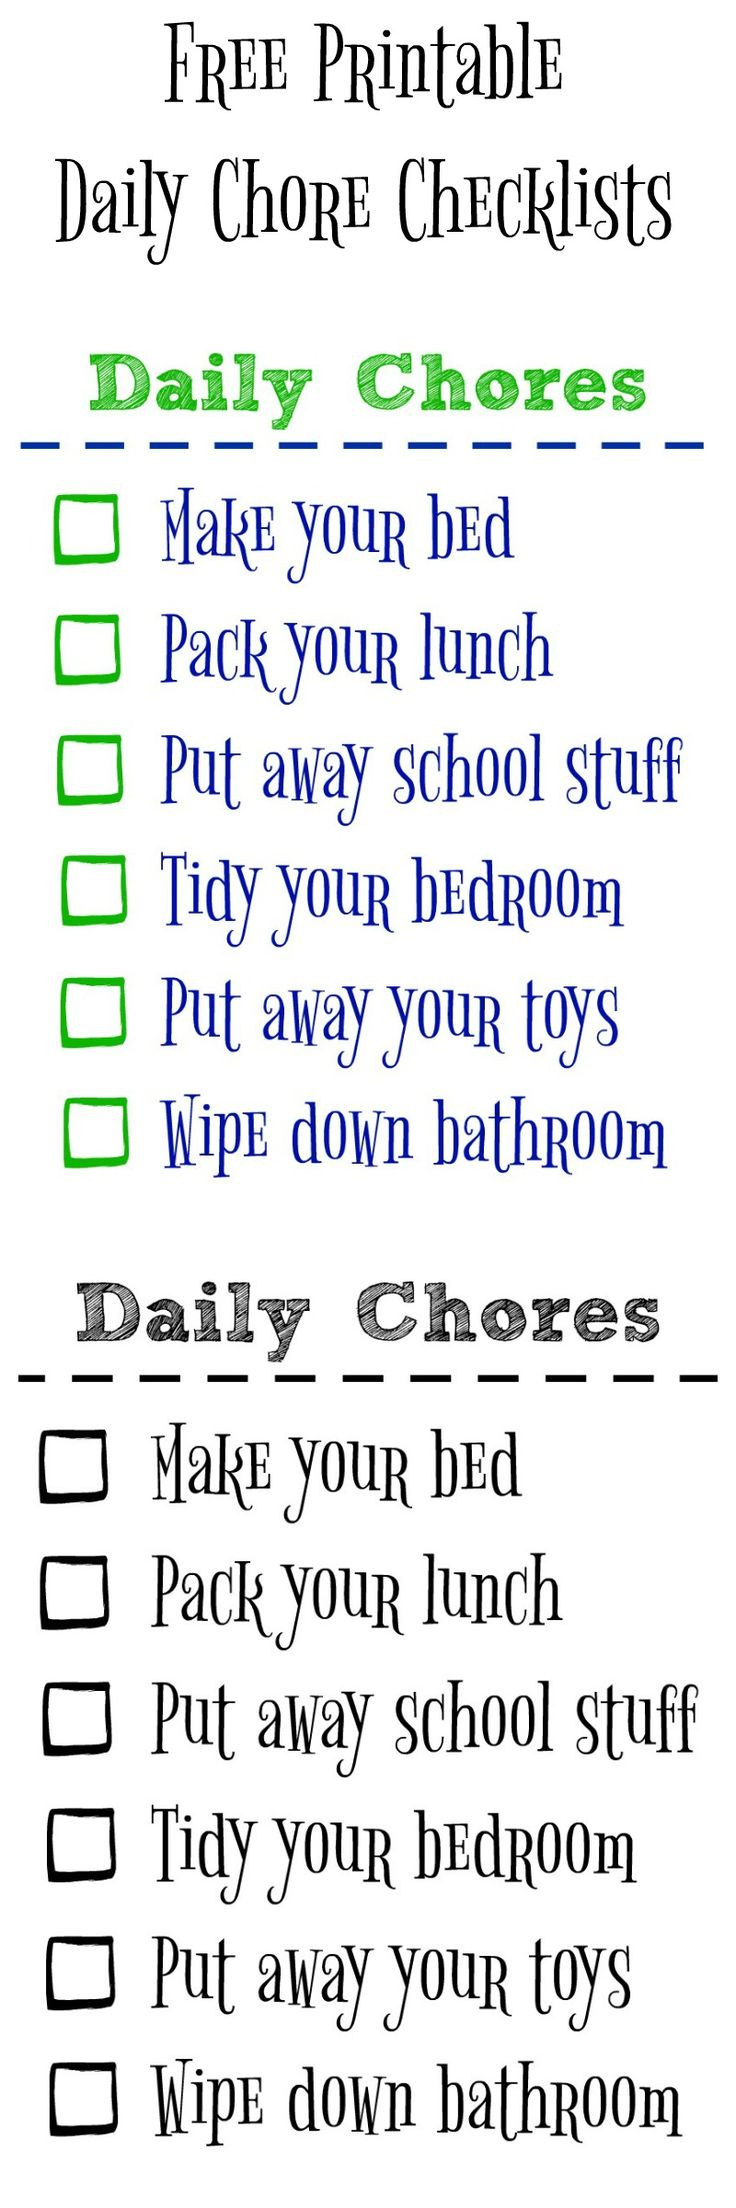 Teaching Kids to be Clean & Organized with a Free Printable Chore Checklist - The Happy Housie #ad #ilovegreenworks